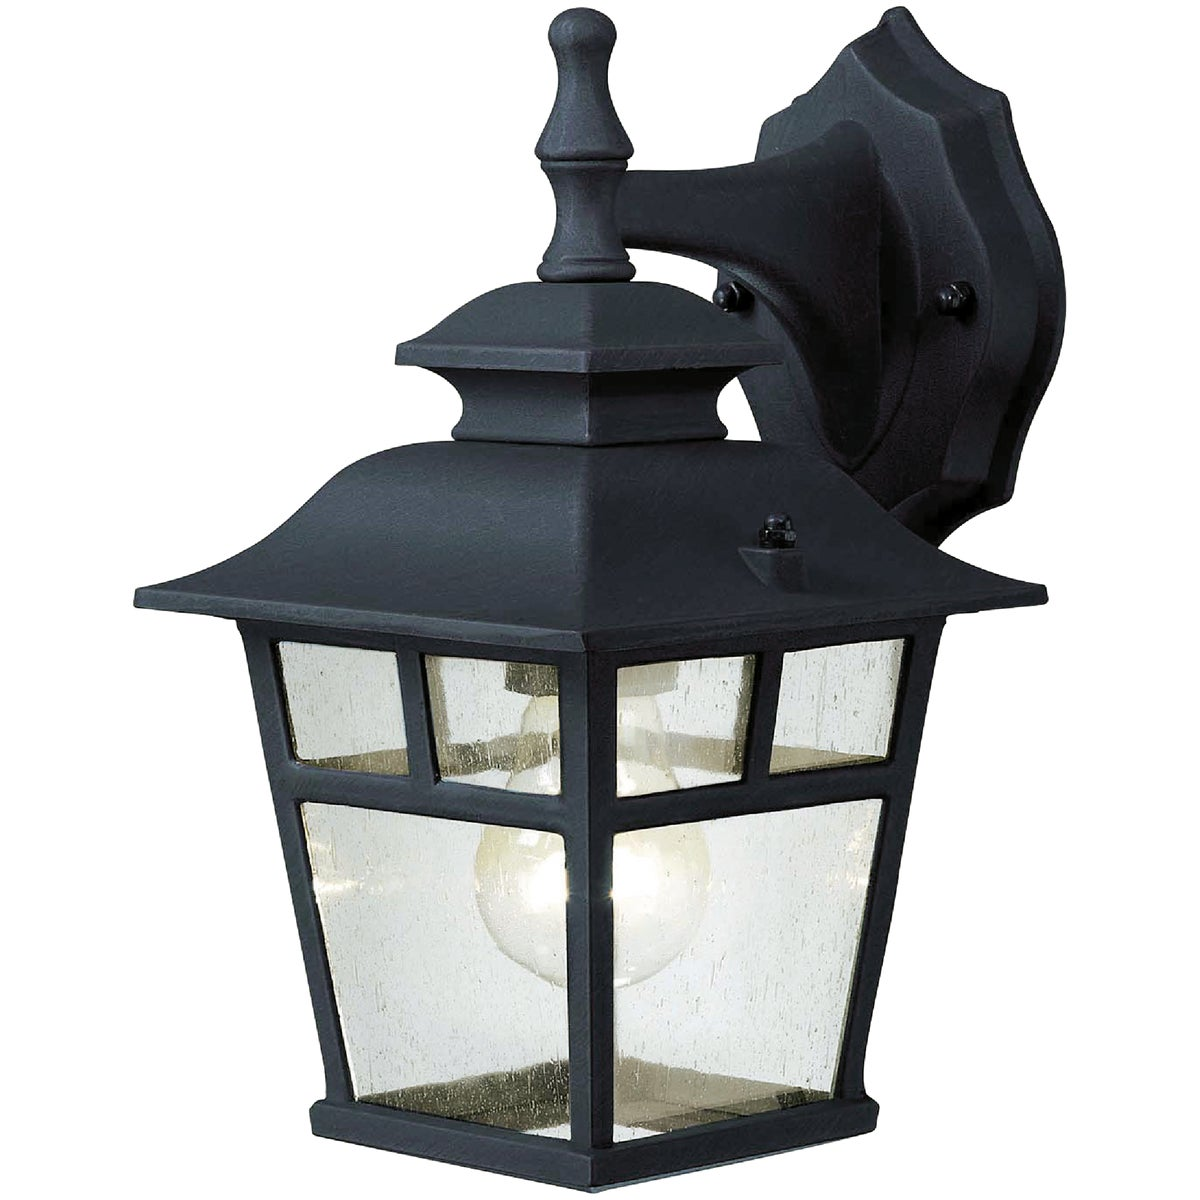 BLACK OUTDOOR FIXTURE - IOL183TBK-C by Canarm Gs